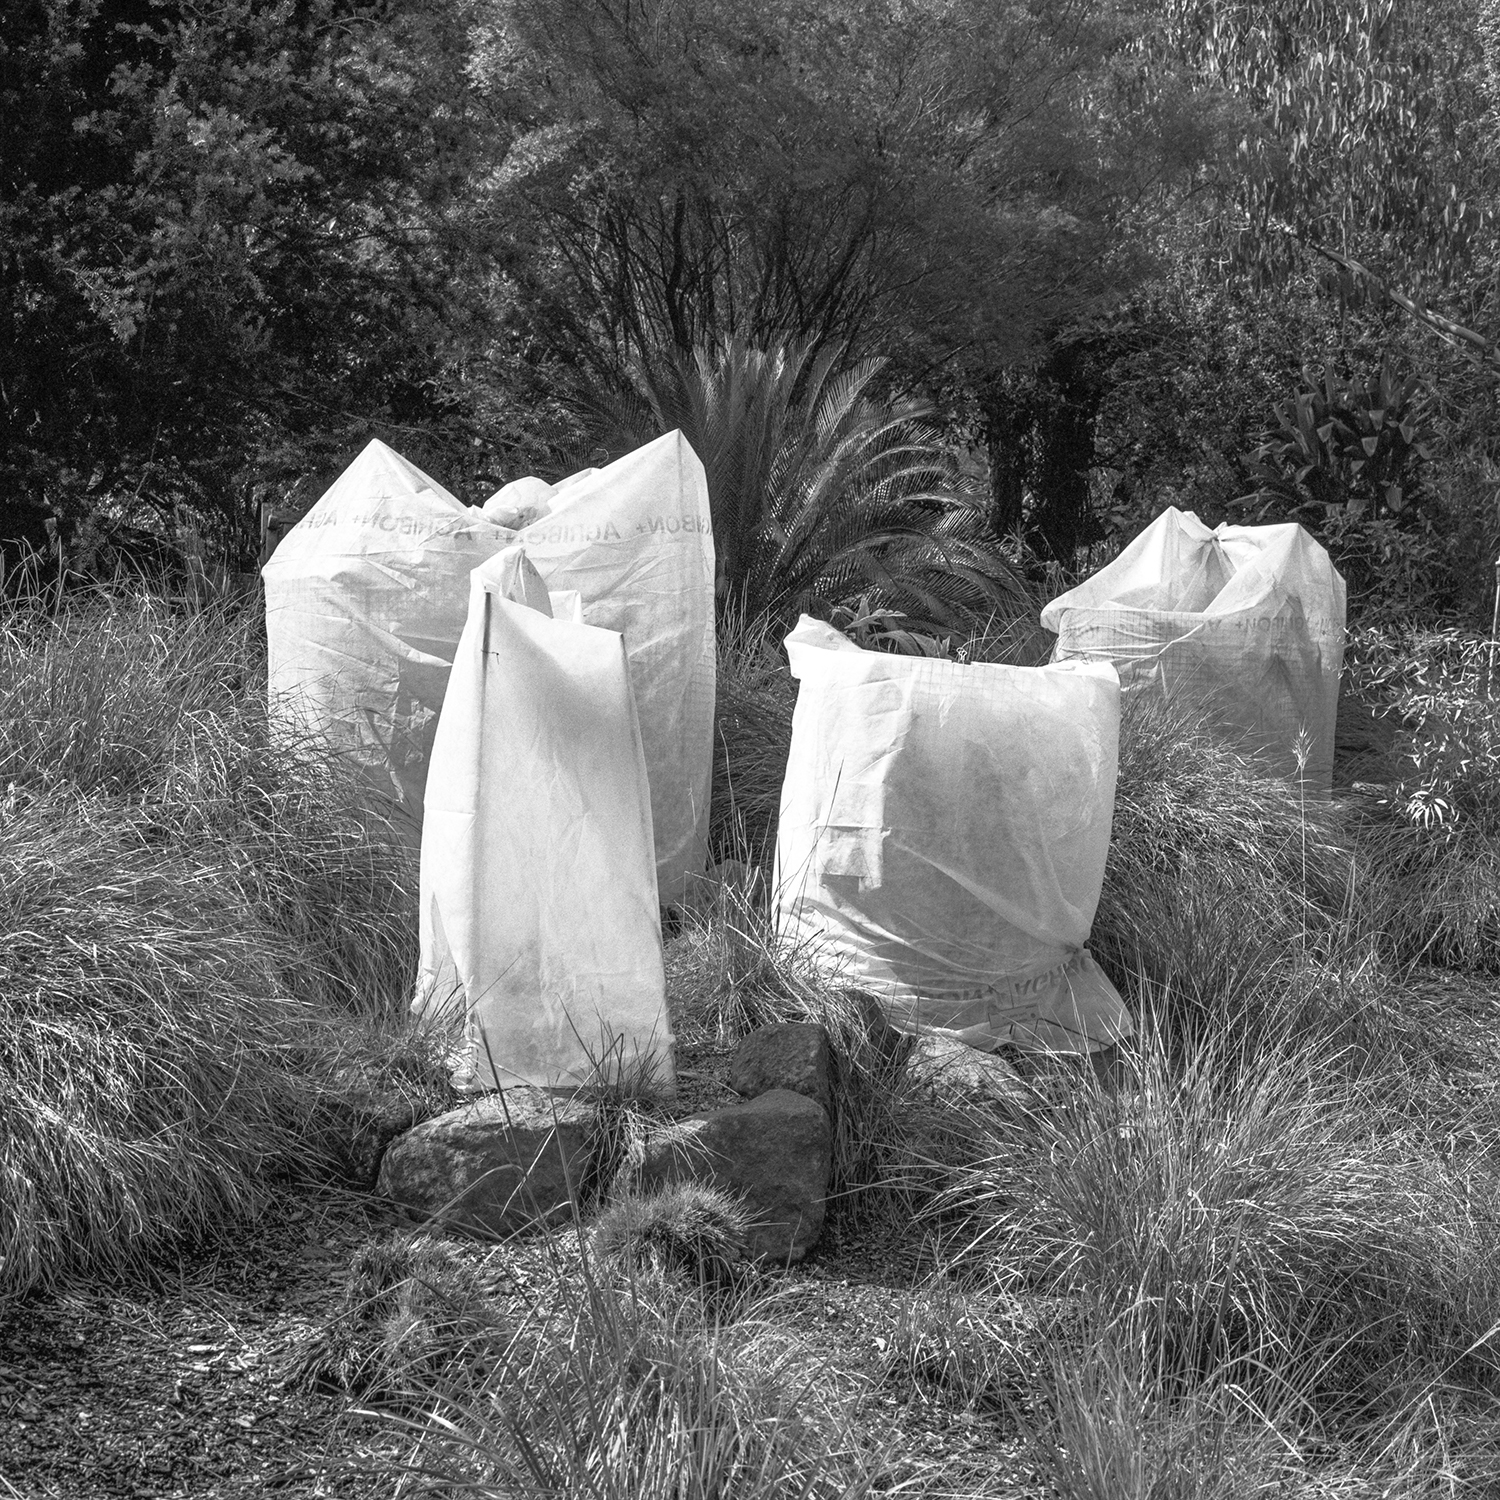 Bags, Berkeley Botanical Gardens, CA, USA 2018